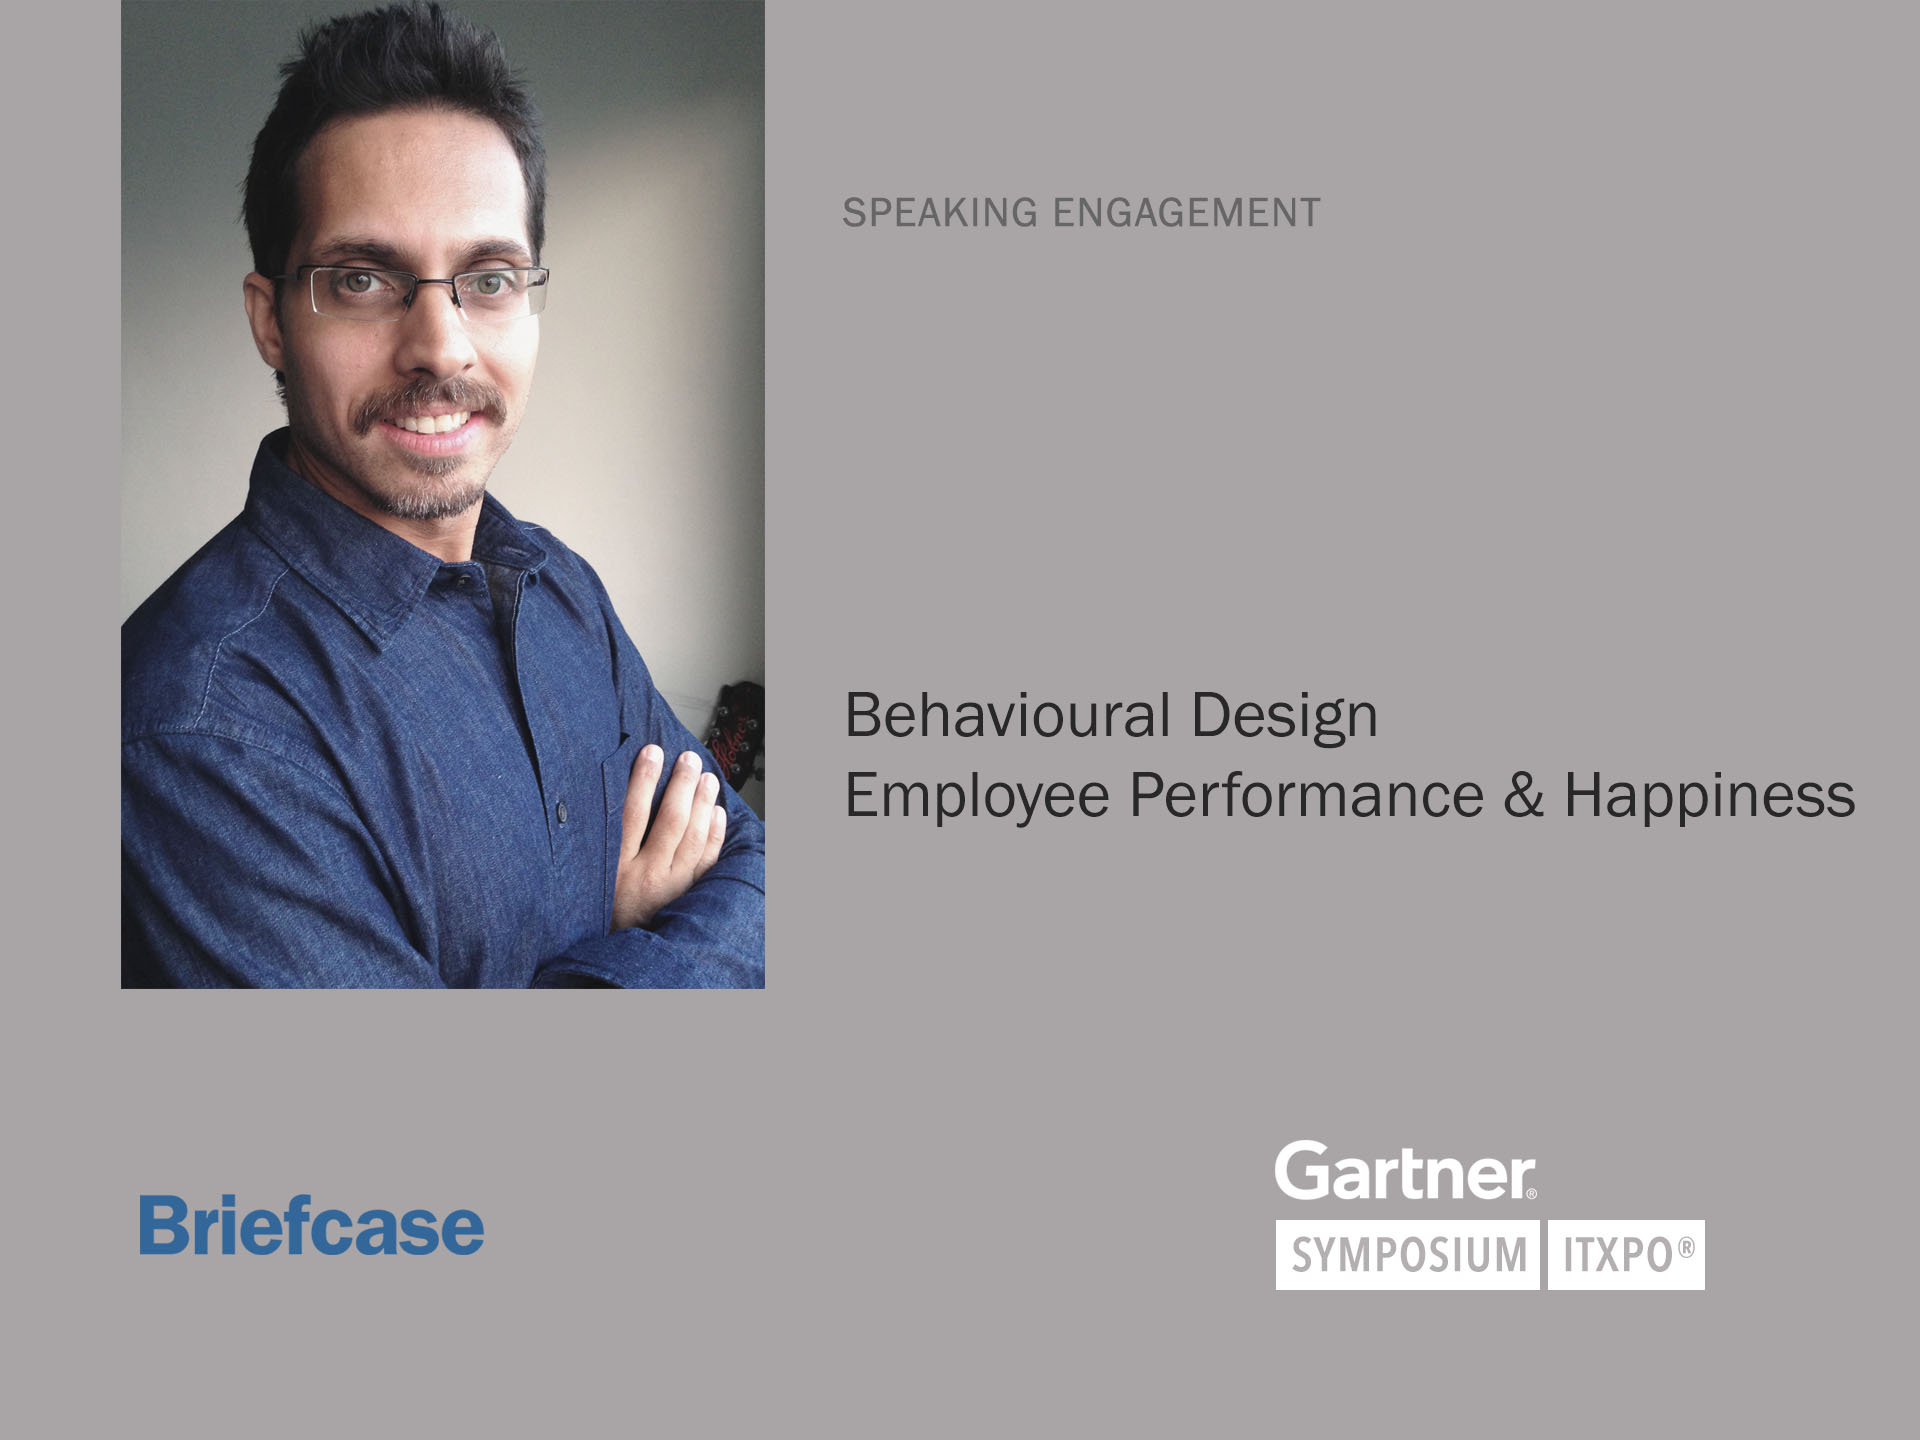 Employee performance and happiness talk (Gartner)